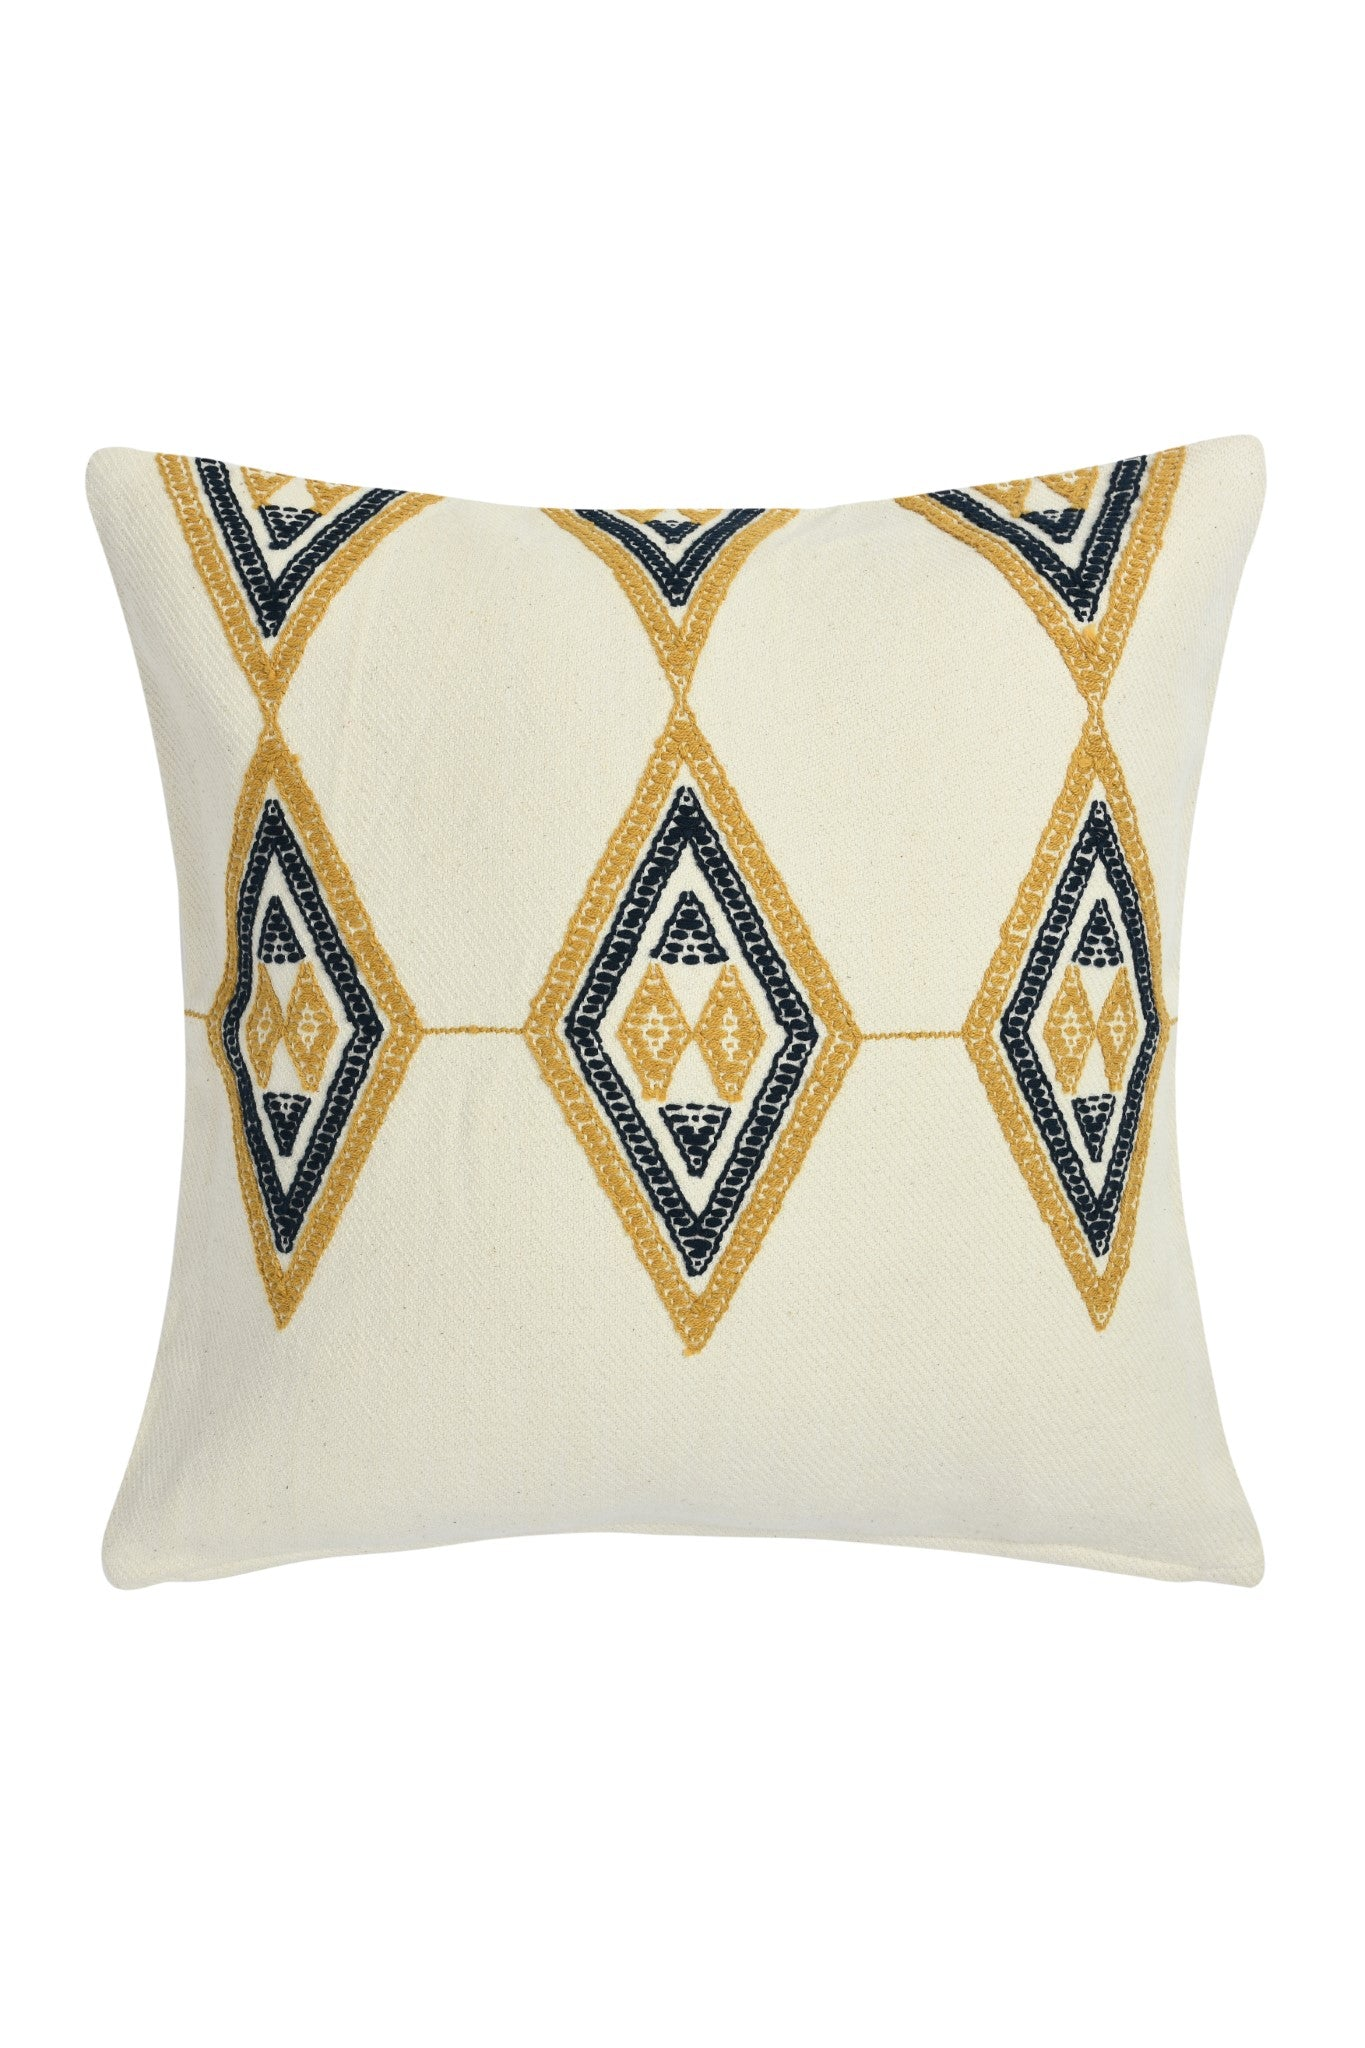 Suti Diamond Motif Extra Weft Woven 16X16 Cushion Cover in Natural Colour